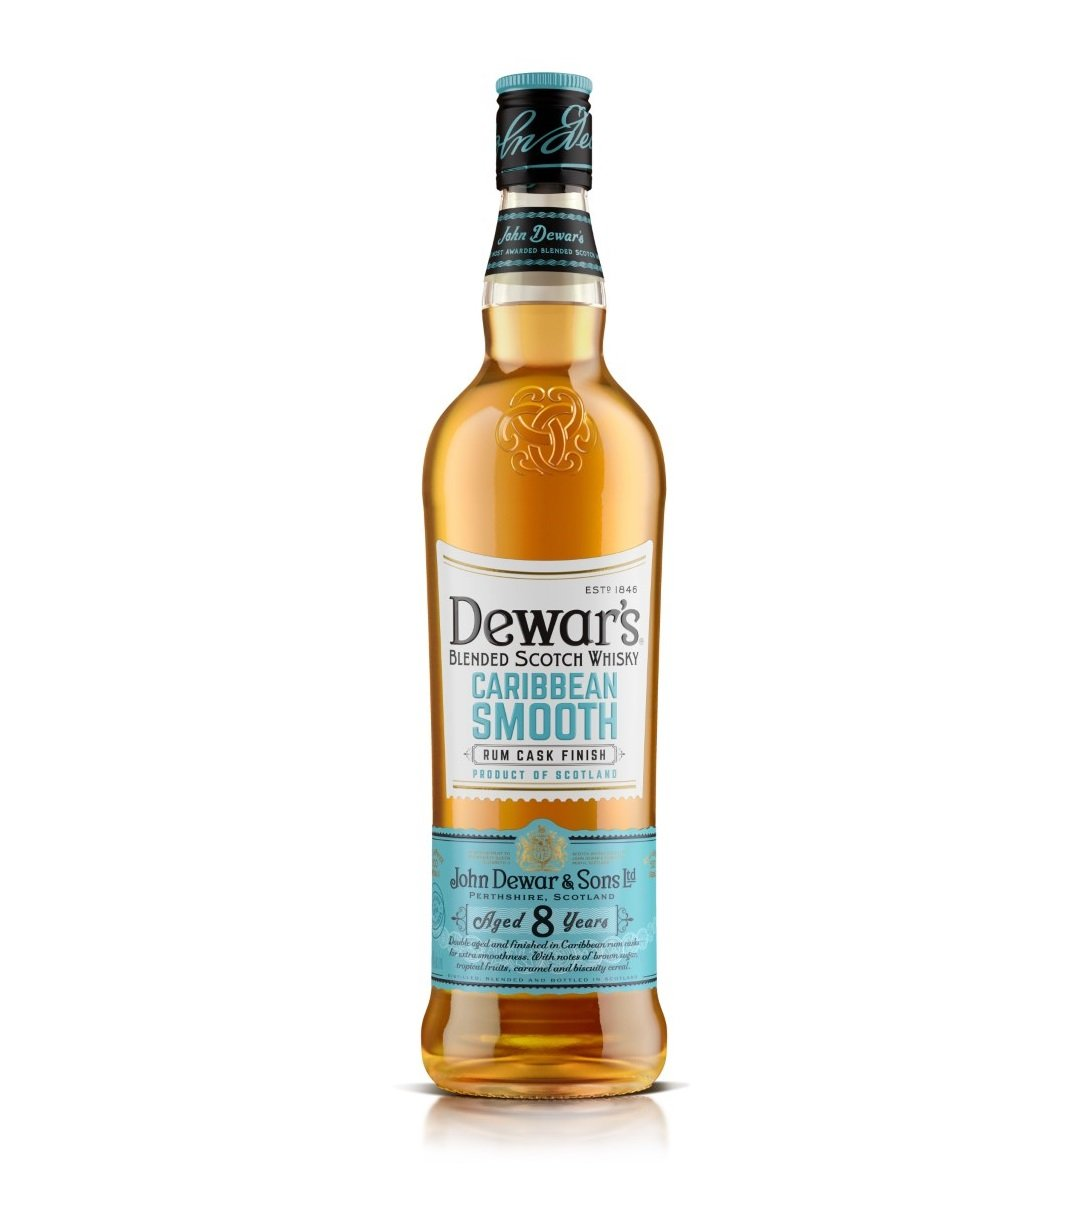 Dewar's Caribbean Smooth Rum Cask Finish 8 Years Old